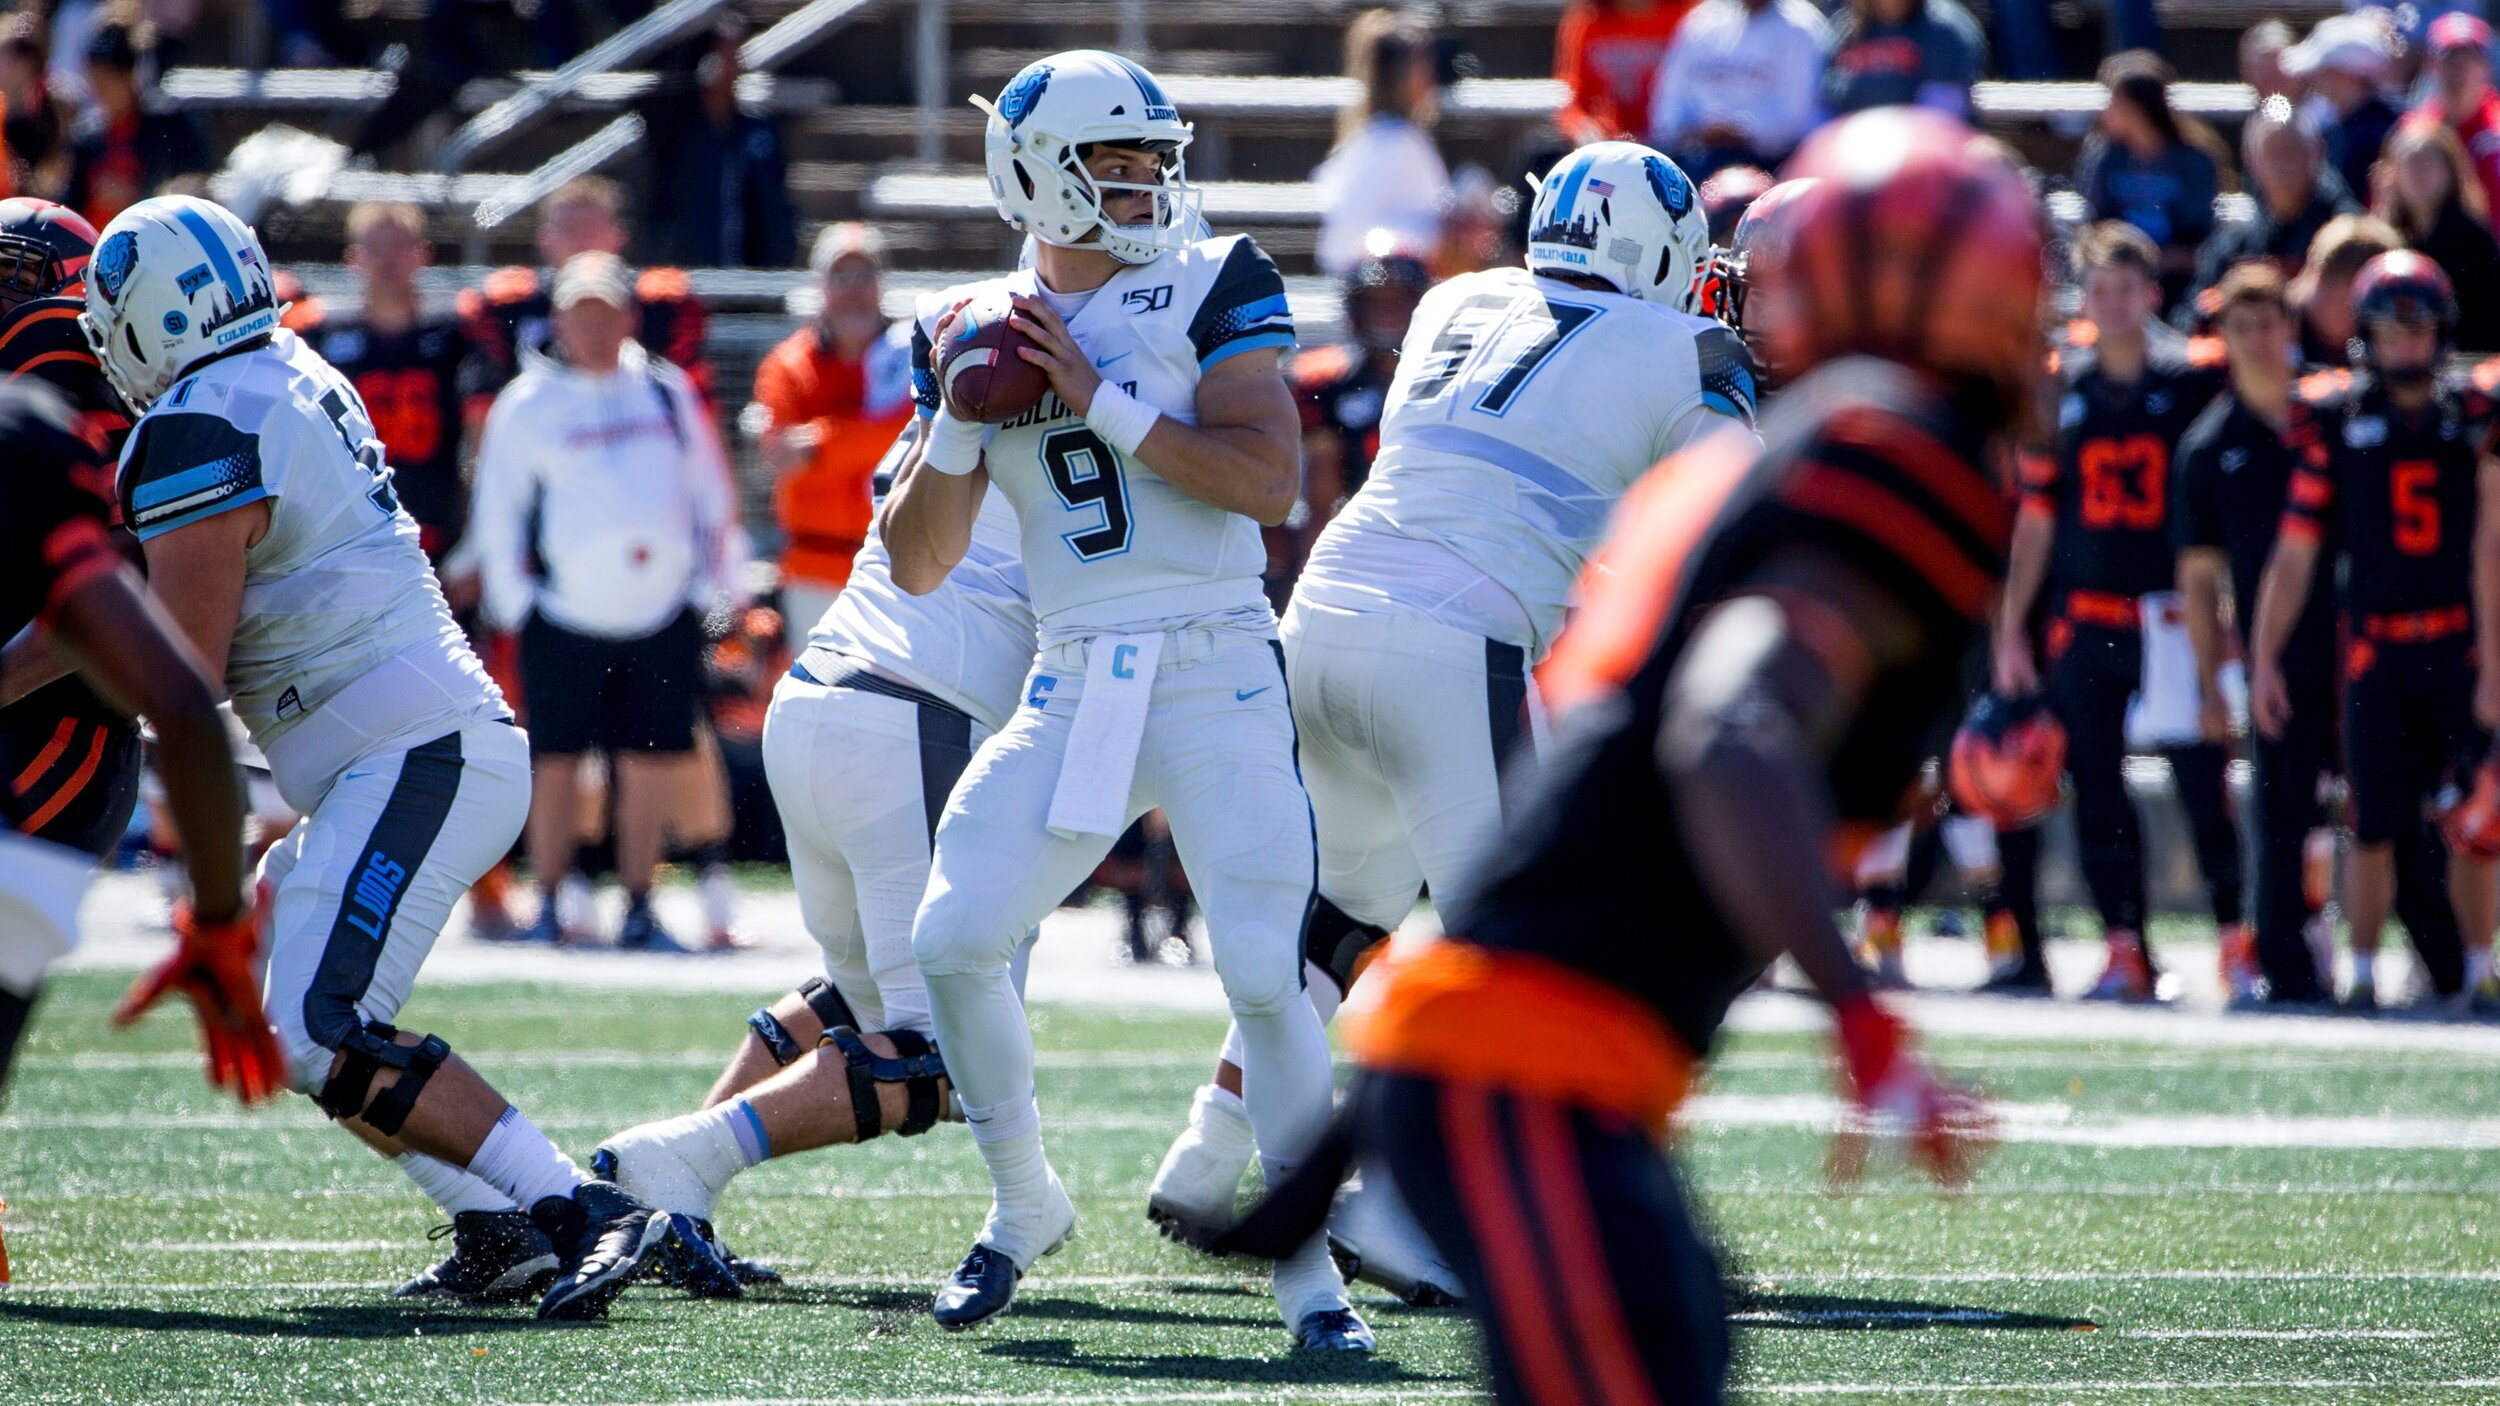 Quarterback Josh Bean drops back to pass against Princeton. Photo courtesy of GoColumbiaLions.